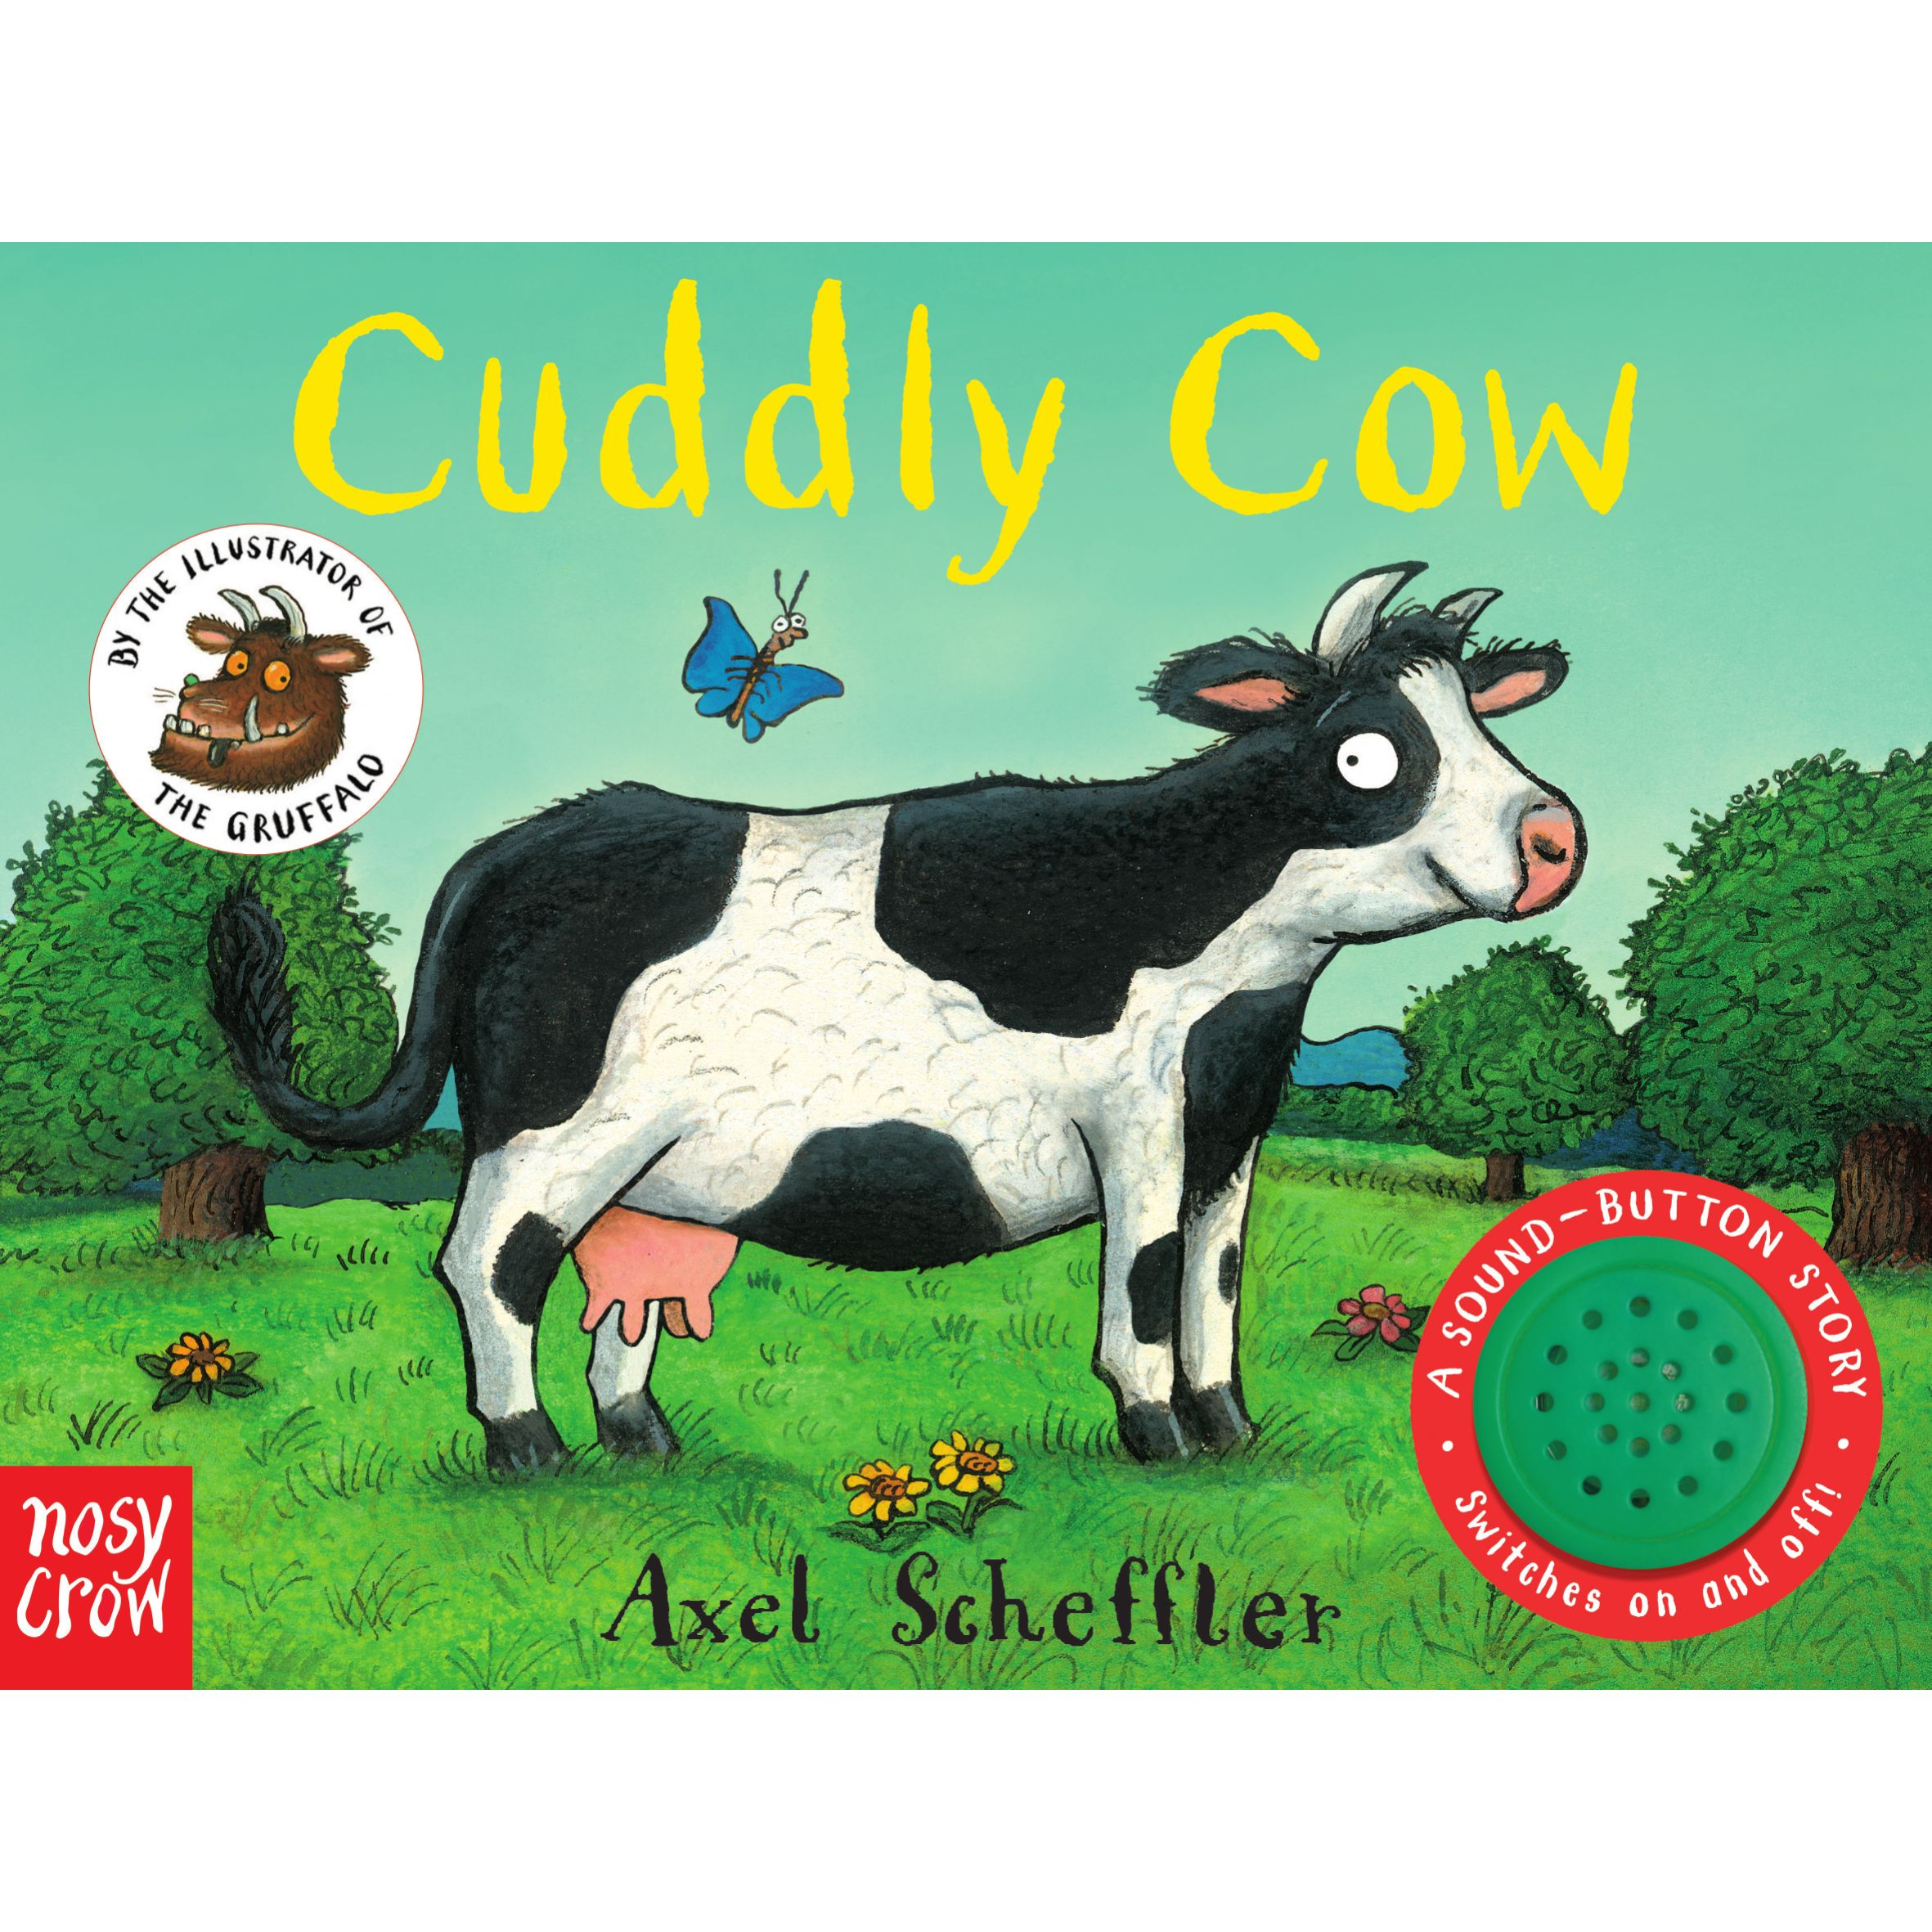 Nosy Crow Cuddly Cow Children's Book